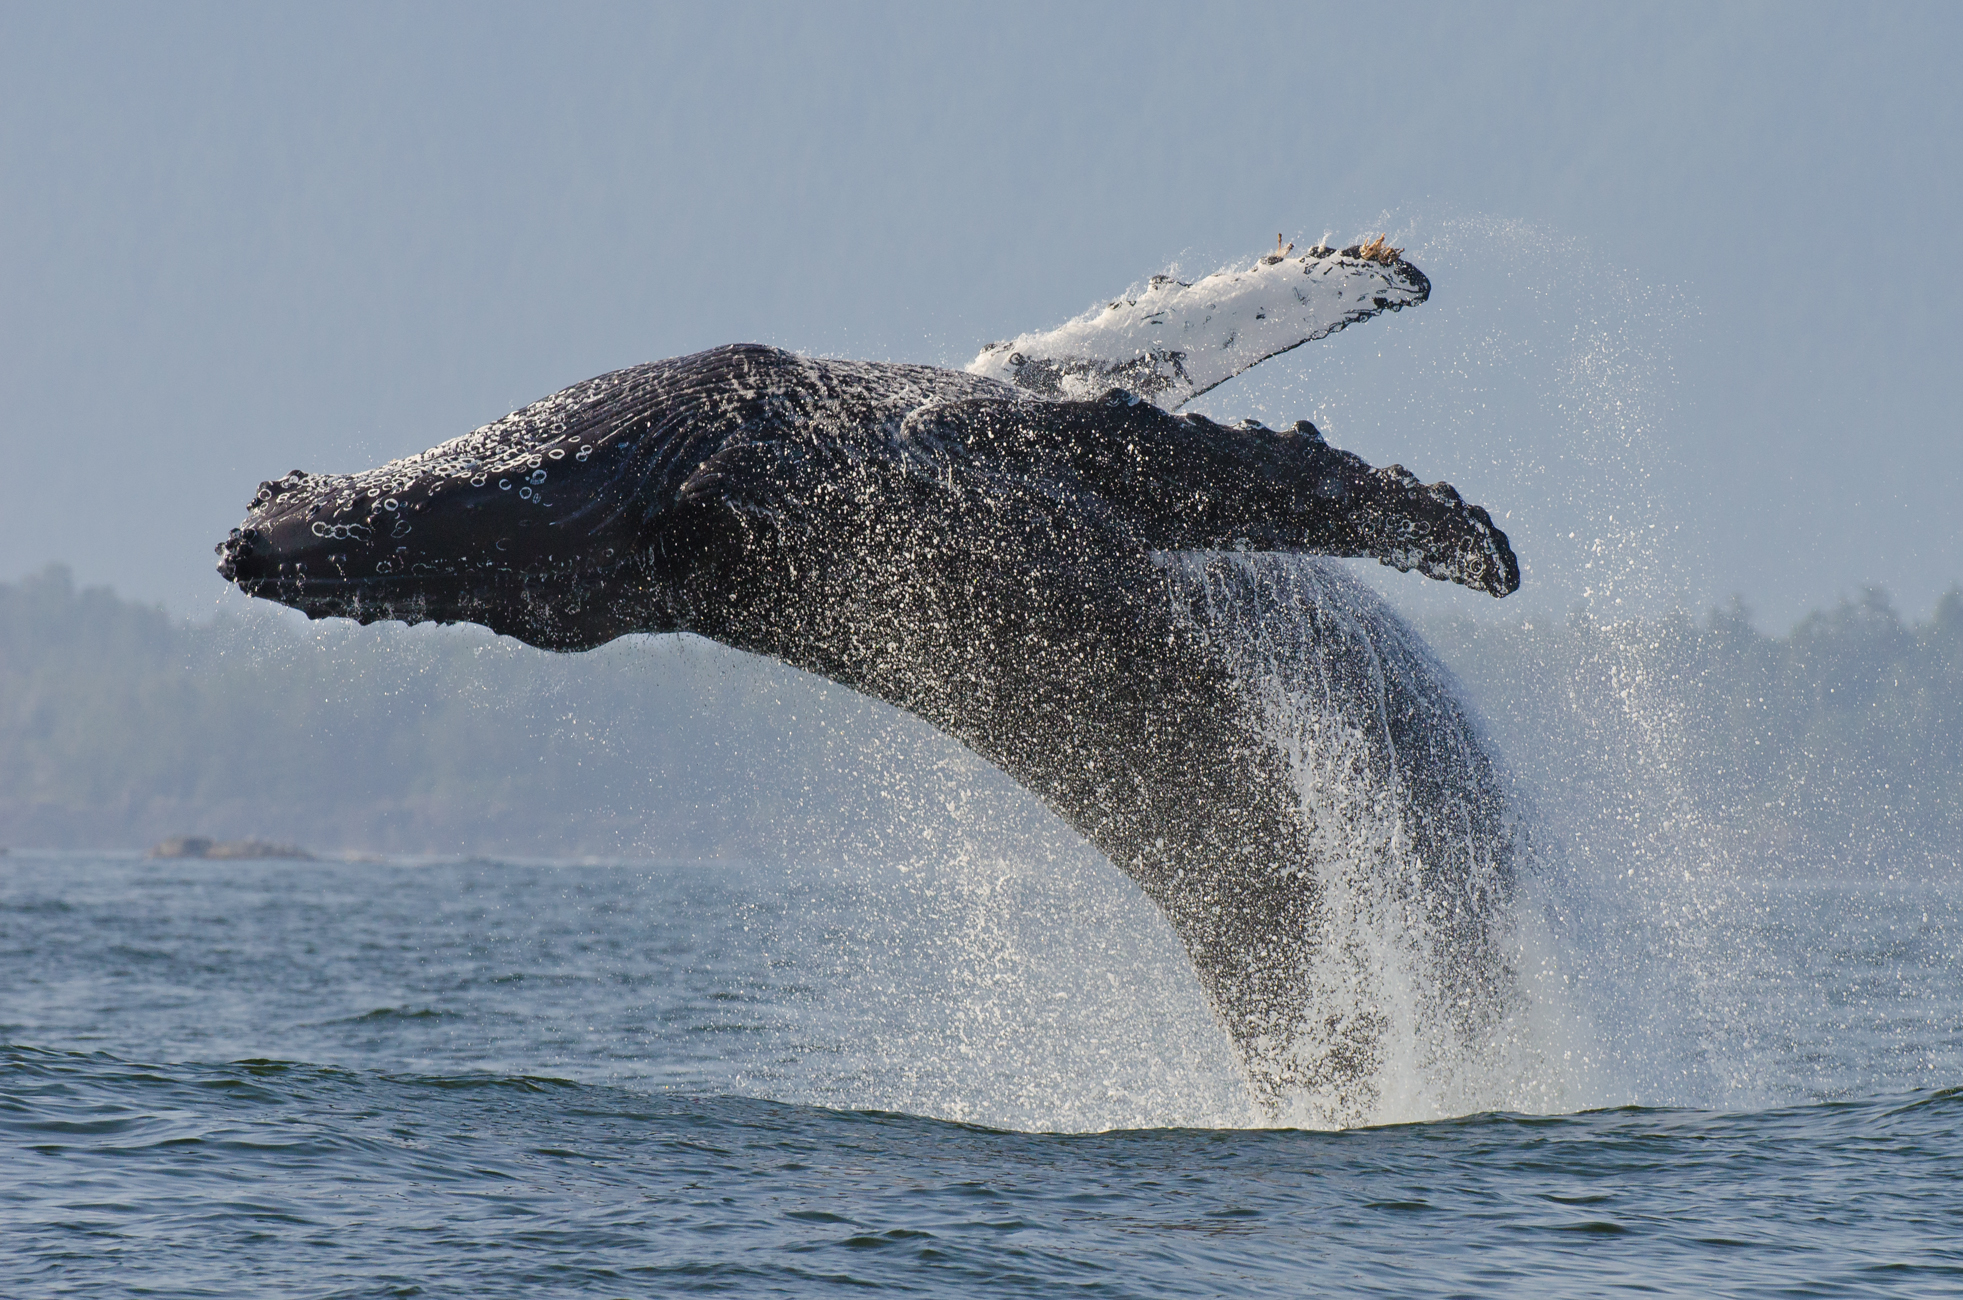 A 16m adult humpback whale breaches out of the water.